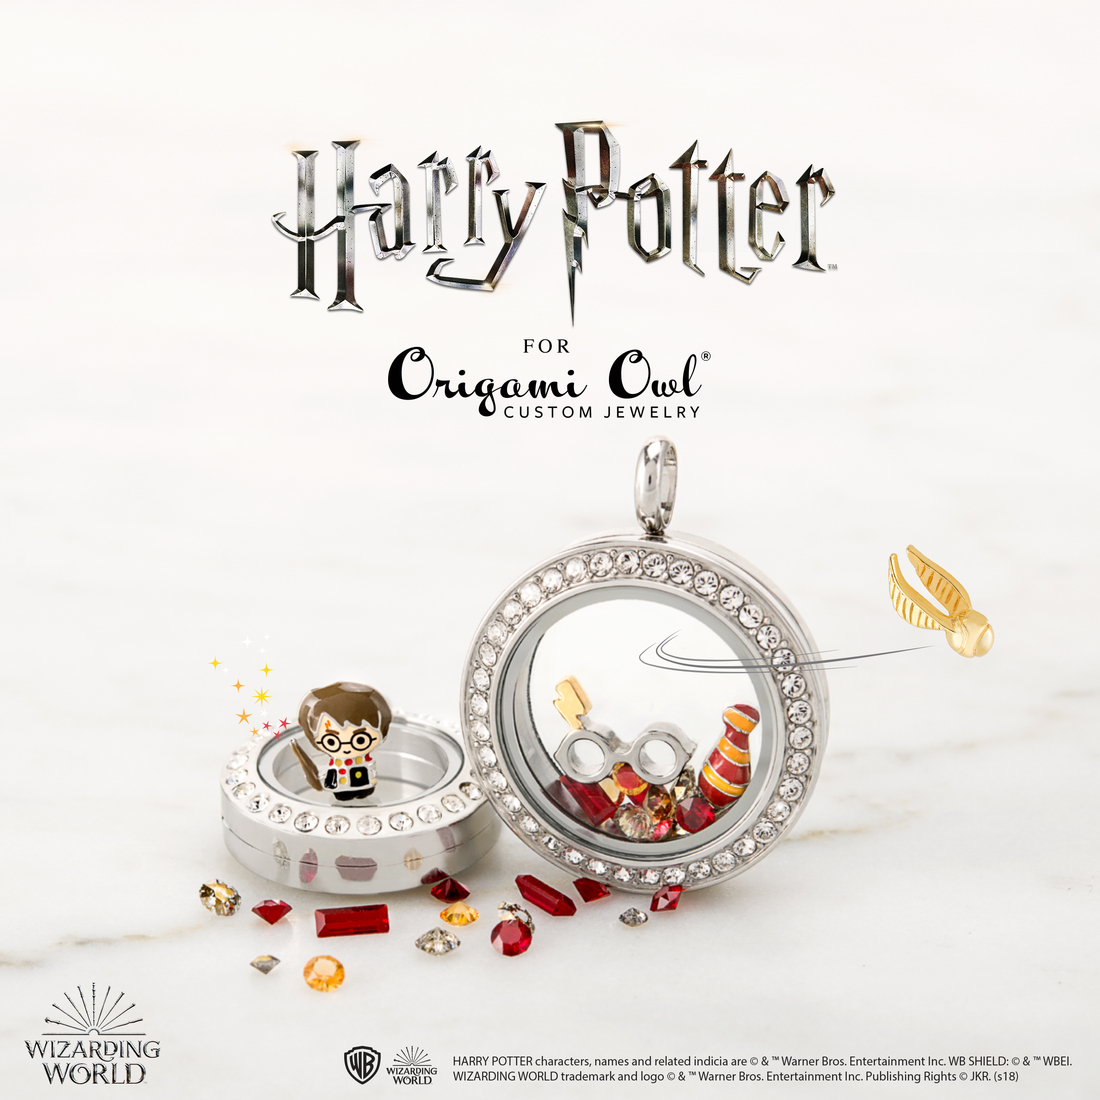 Introducing The Harry Potter For Origami Owl It S Magical